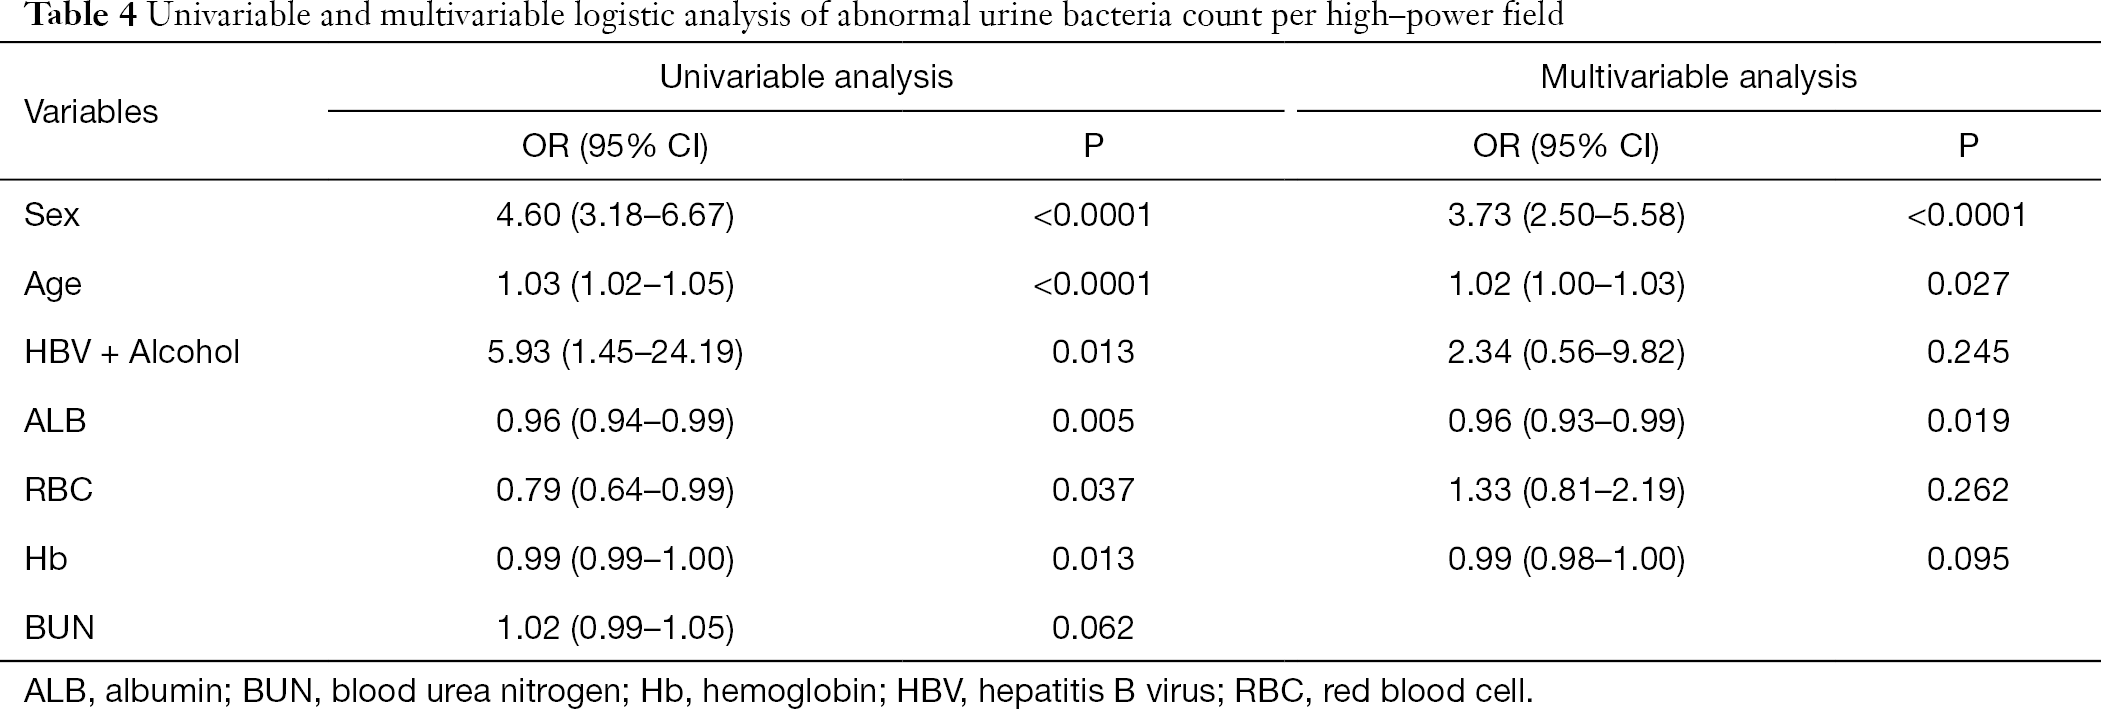 Impact of elevated urine leukocyte and bacteria count per high-power